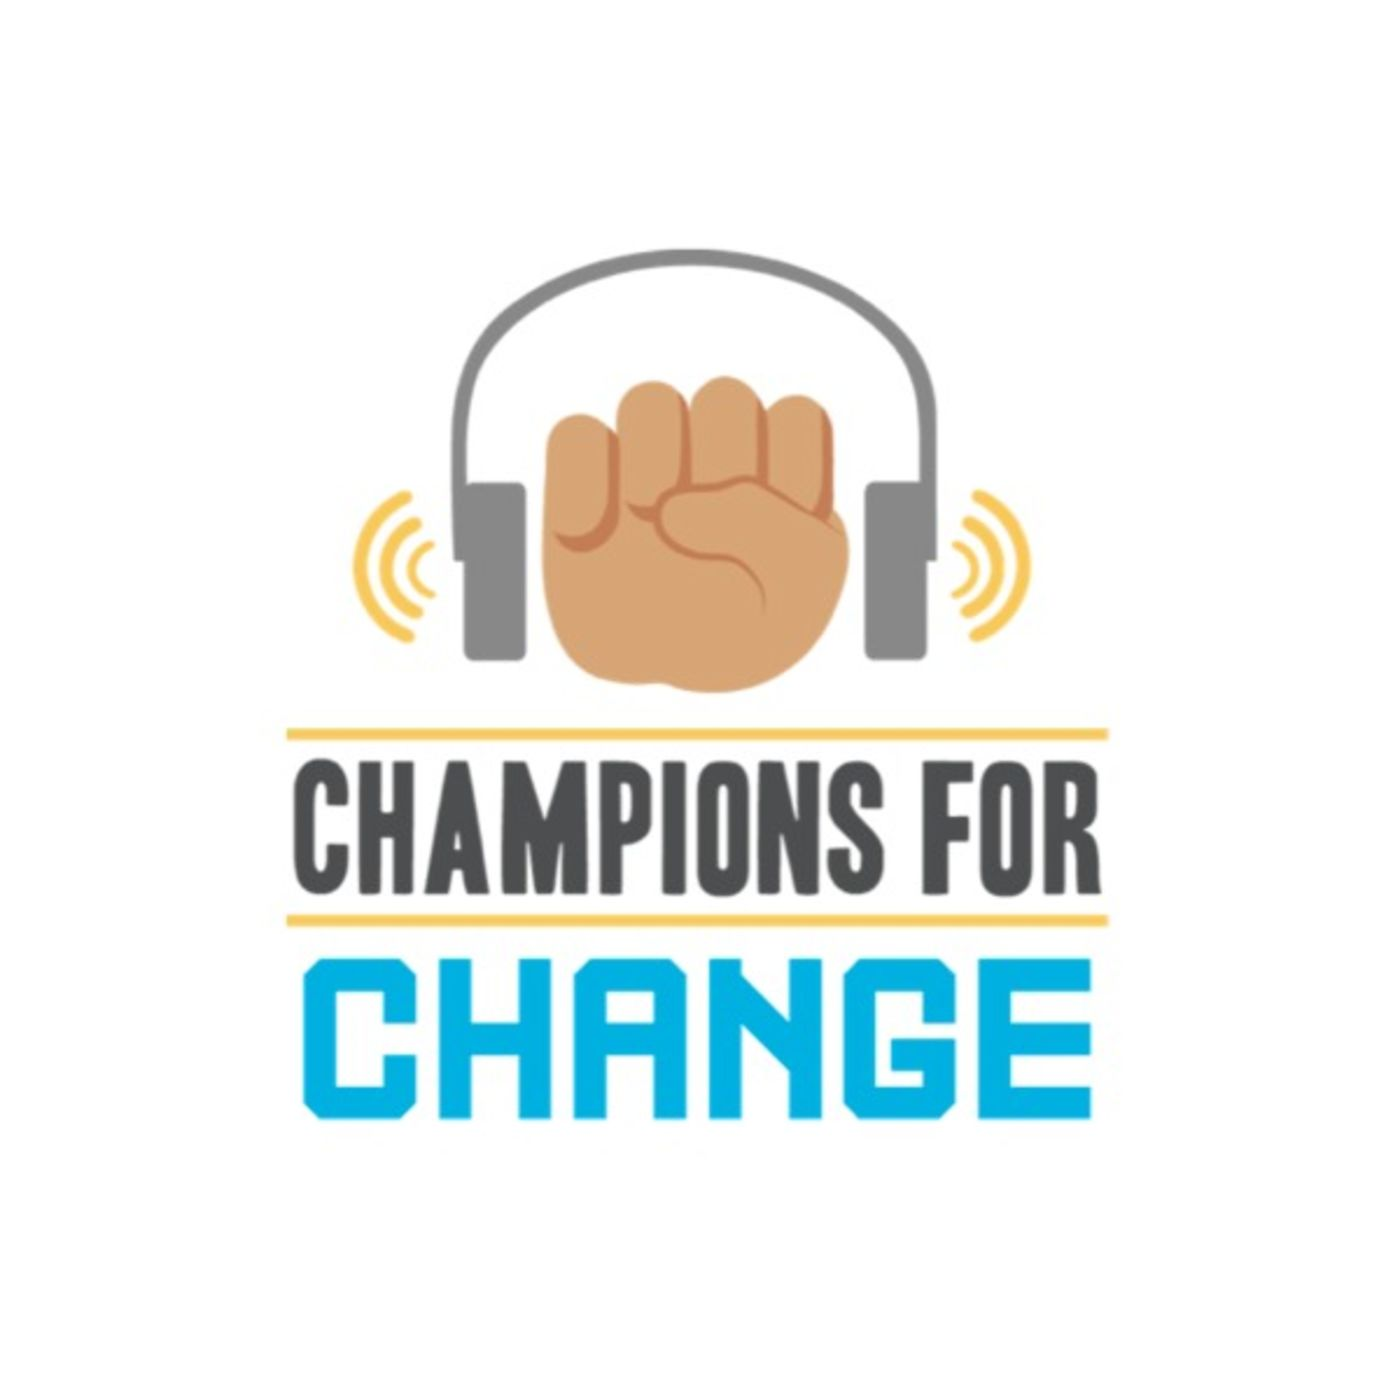 Podcast #1 - Champions for Change - Keith Fernandez